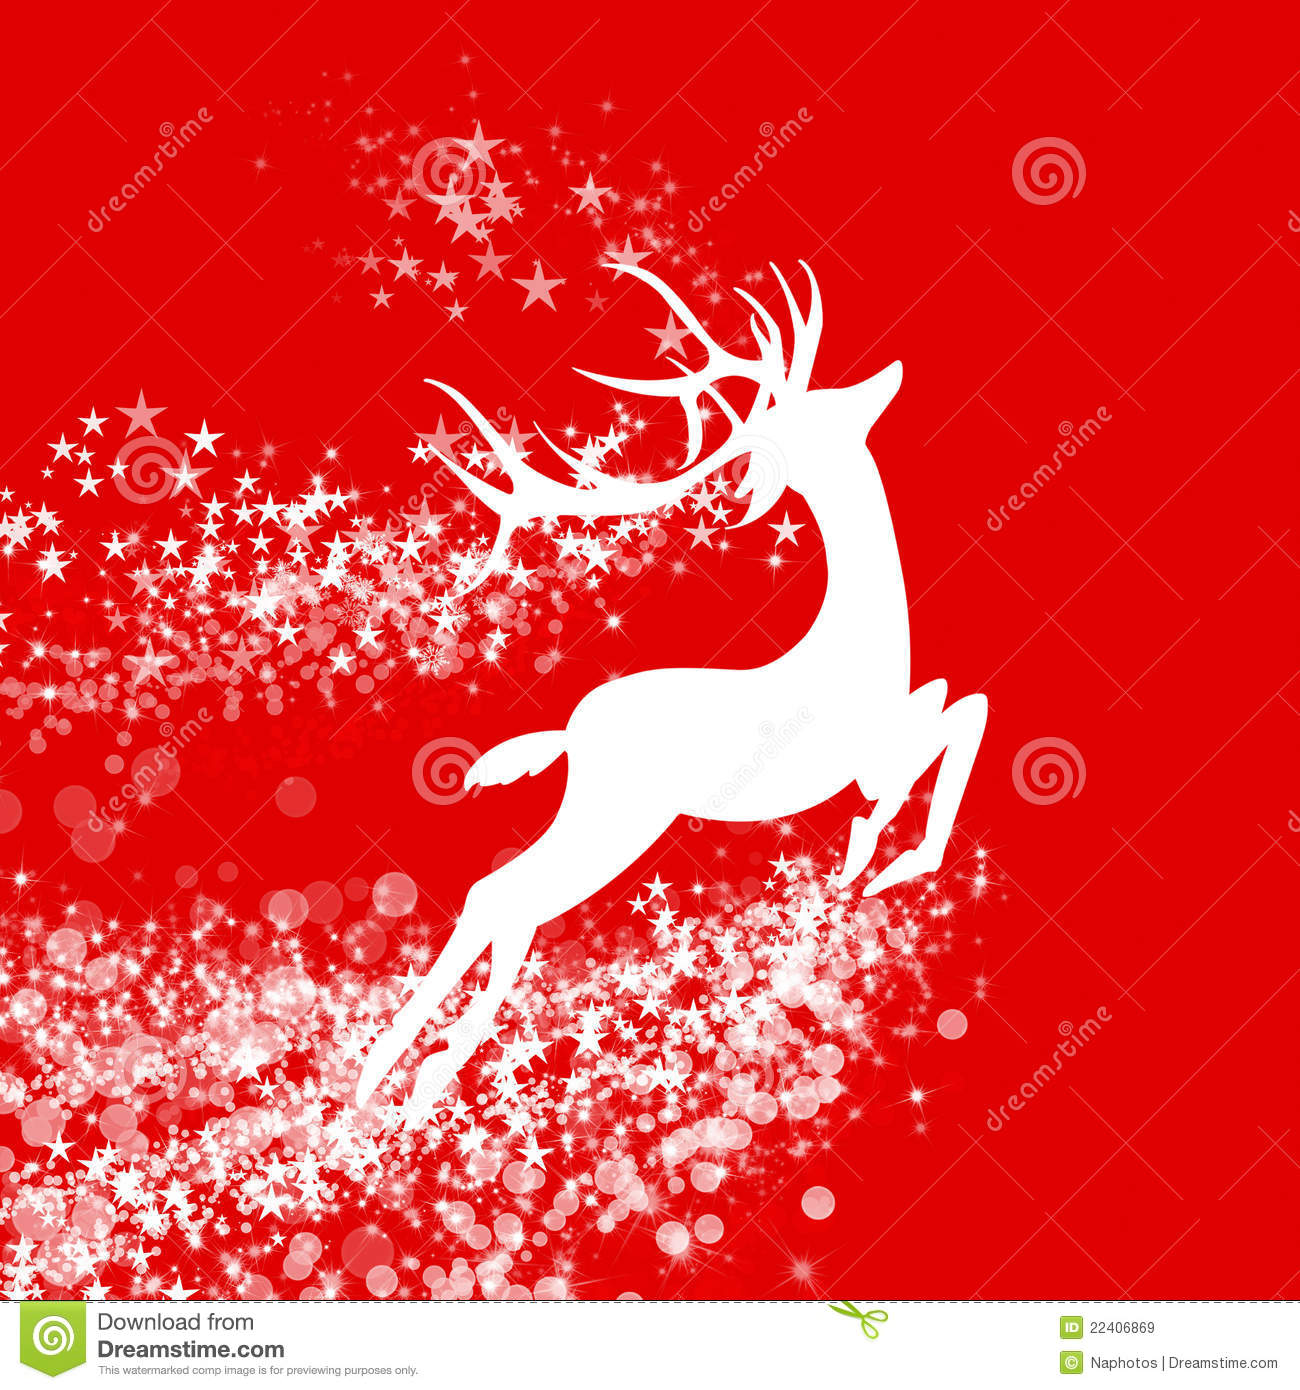 Christmas Background Reindeer Design